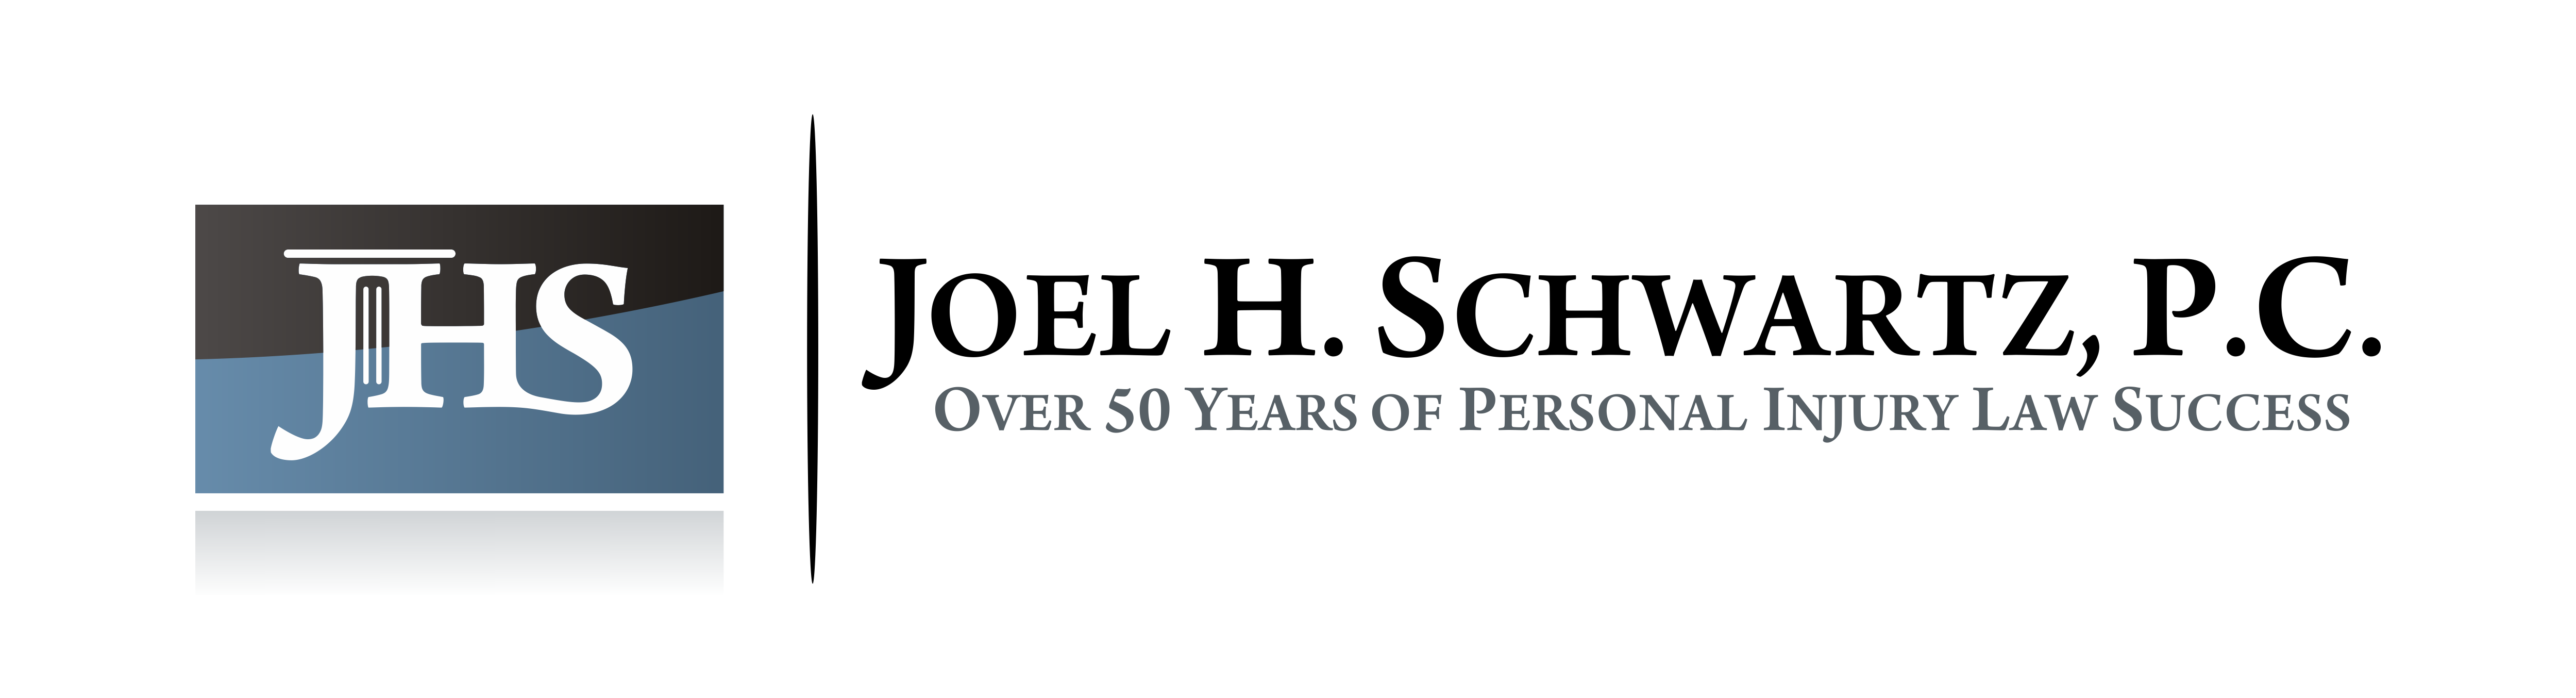 Joel H. Schwartz, P.C. - Experienced Personal Injury Attorneys In Boston Representing Accident Claim Cases